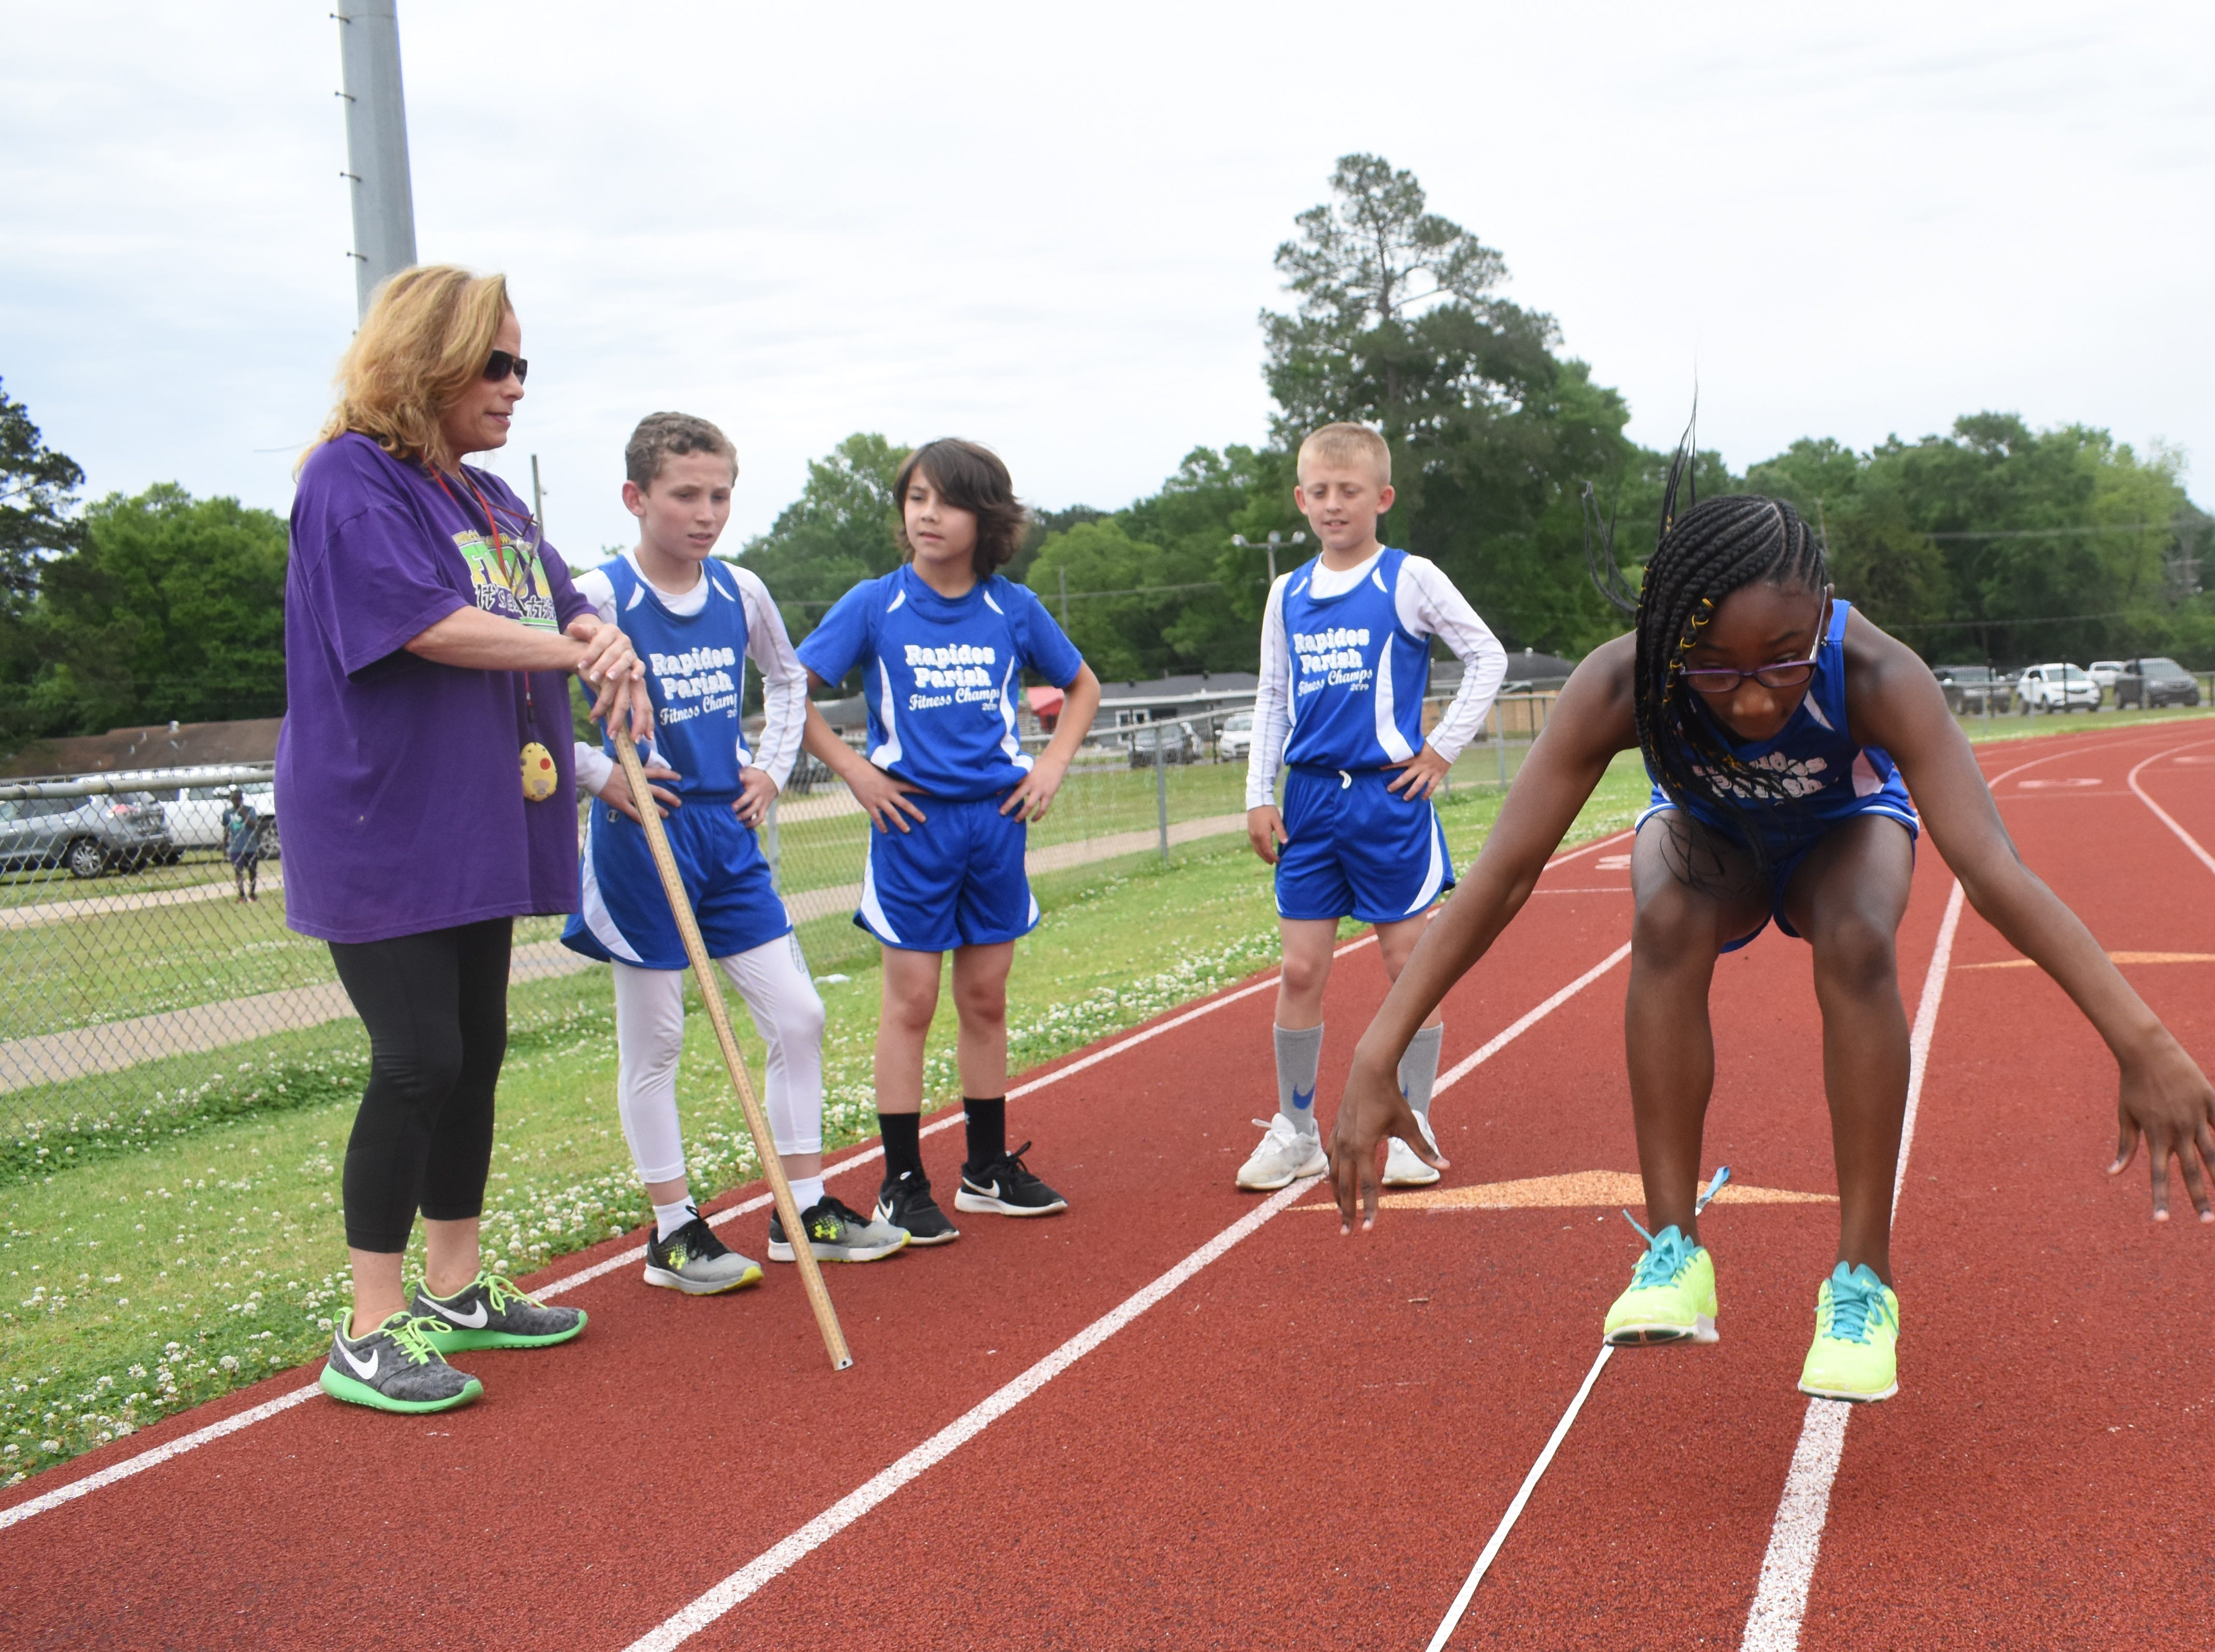 Margaret LaBorde, Rapides Parish Fitness team coach and coordinator (left) watches Amari Dupar of Cherokee Elementary School complete a long jump. Amari and five other Rapides Parish elementary school students will compete in the 2019 State Championship Fitness Meet to be held Saturday, April 27, 2019 at Alexandria Senior High School. The meet is part of the Governor's Council on Fitness and Sports. Students from throughout Louisiana will compete in seven events: 50-yard dash, sit and reach, pull-ups,  shuttle run, curl-ups (sit-ups), standing long jump, and the 600-yard run. For the past three years, the Rapides Parish Fitness Team has placed first at the meet. Dean was the highest scoring boy last year and won the title of 2018 Mr. Fitness for the State of Louisiana. The meet will be from 10 a.m. to 2 p.m.